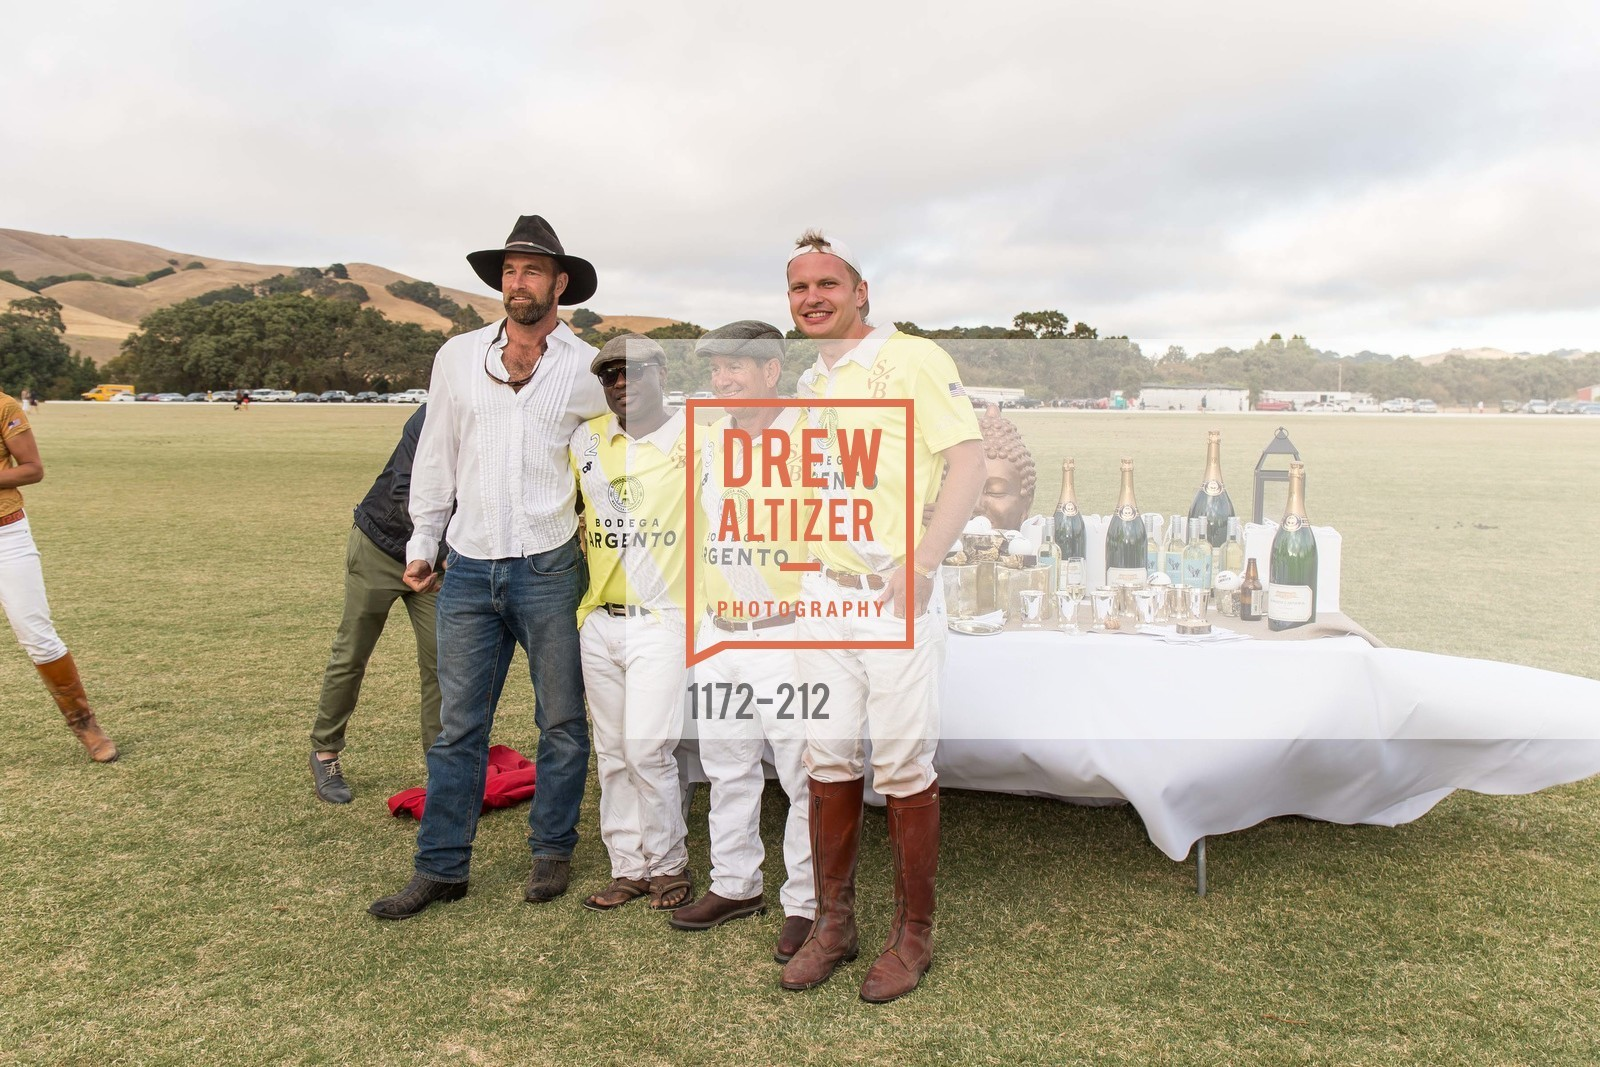 Hearst Welborn, Akin Sotomi, Rob Darakhshan, Ross Caton, Stick & Ball Oyster Cup Polo Tournament, Cerro Pampa Polo Club, July 25th, 2015,Drew Altizer, Drew Altizer Photography, full-service agency, private events, San Francisco photographer, photographer california